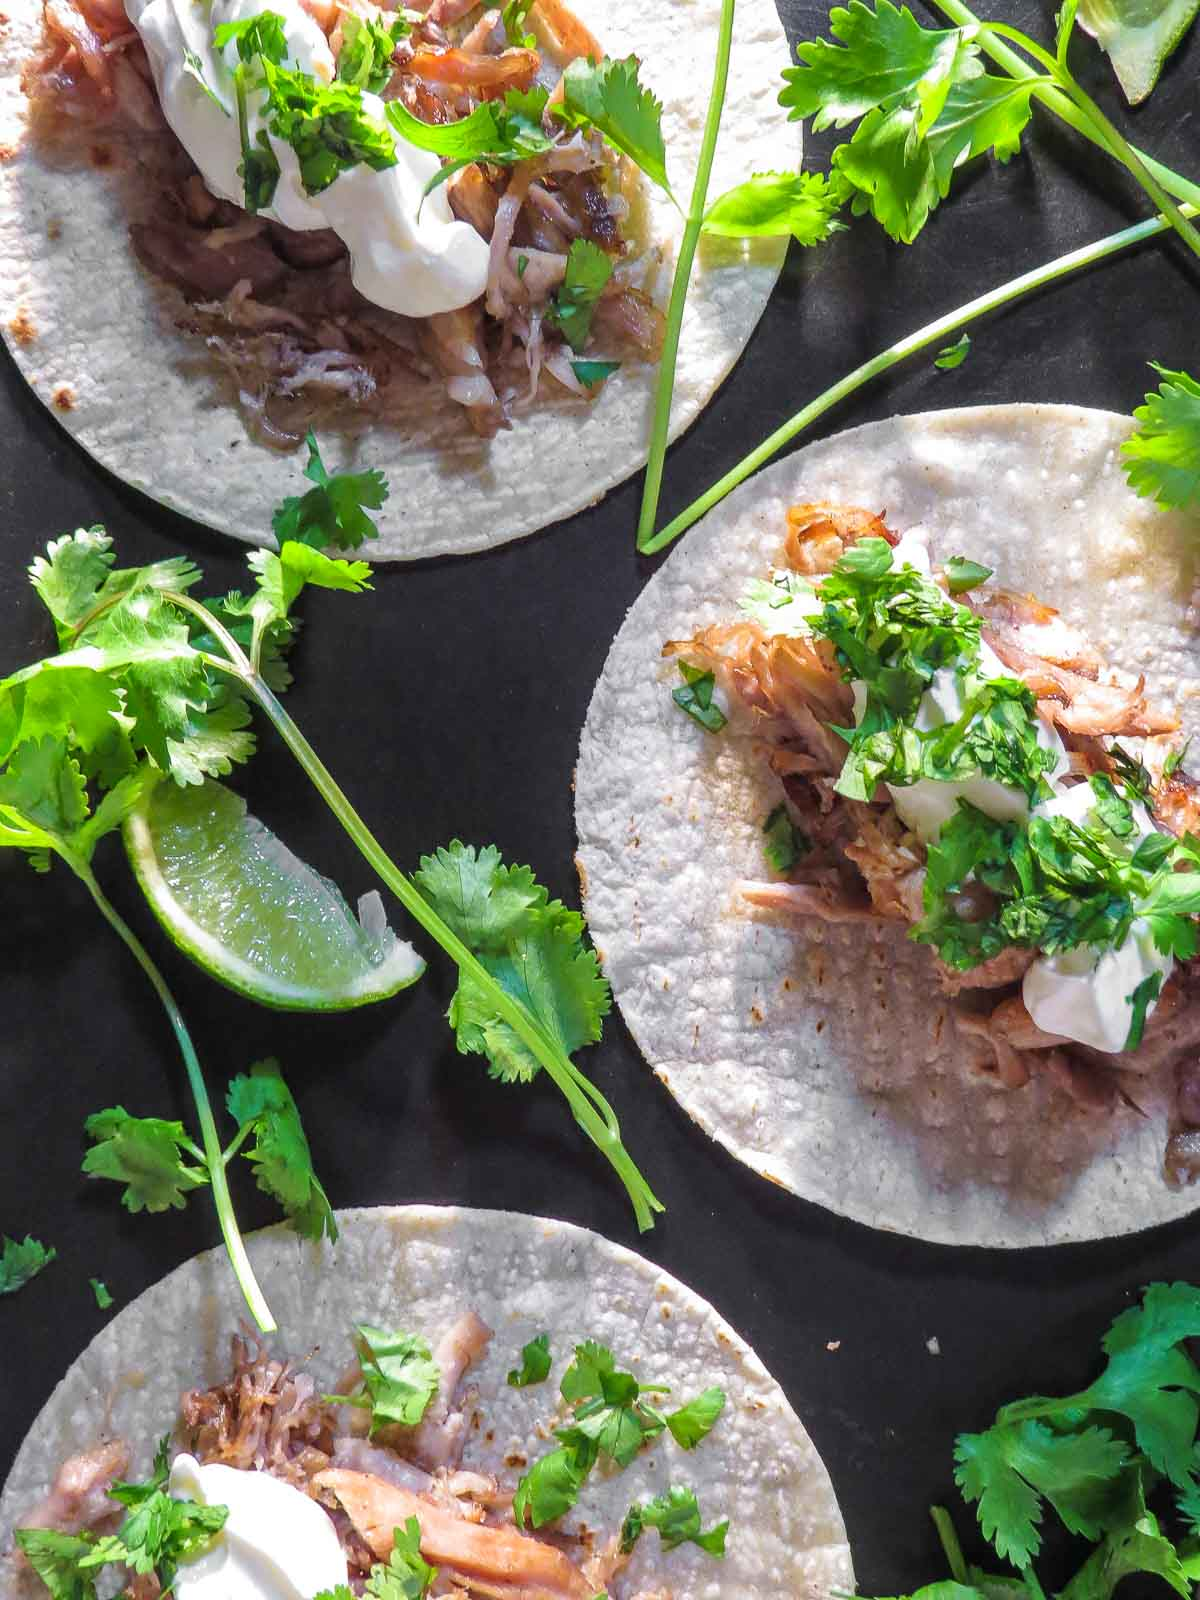 Papa's Sous Vide Carnitas - My dad loves experimenting with sous vide cooking. His sous vide carnitas are cooked for 24H then broiled for a bit to get a nice crisp for tacos and the mexican celebration of Cinco de Mayo!